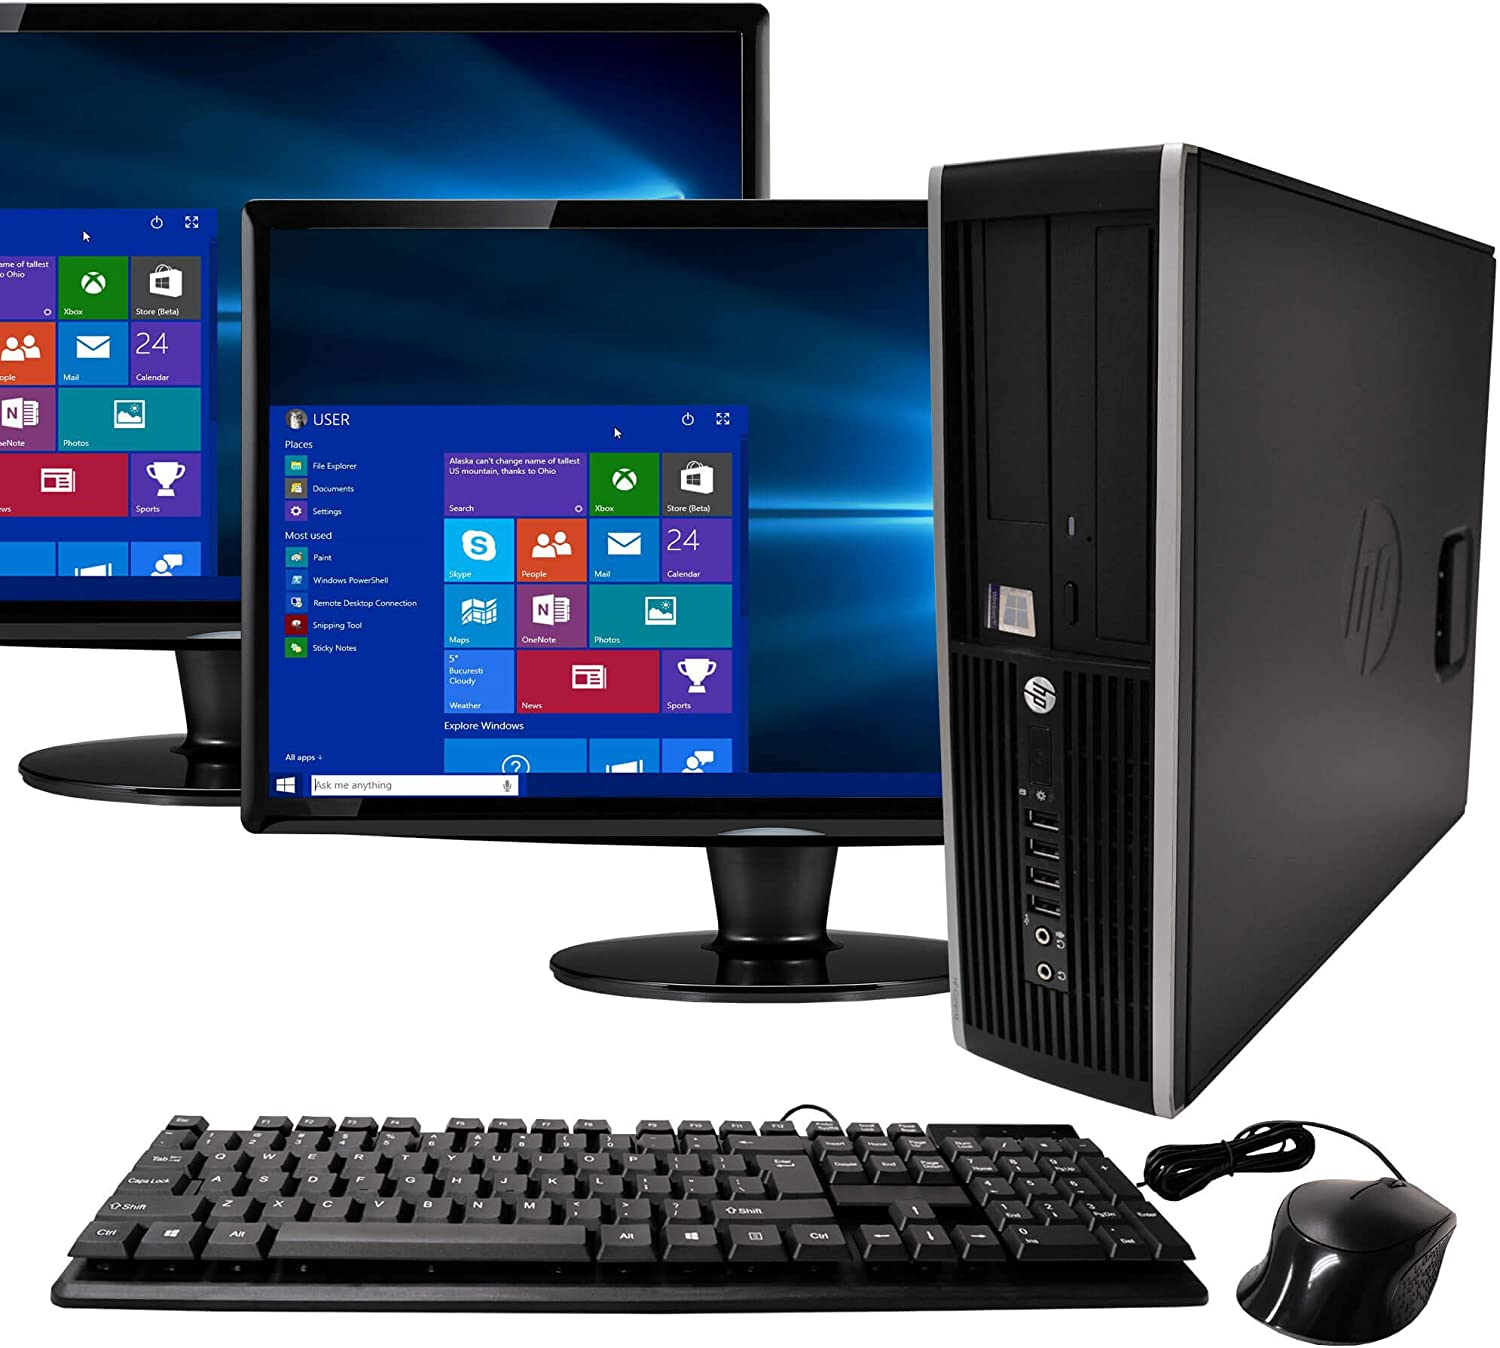 HP Elite Desktop Computer, Intel Core i5 3.1GHz, 8GB RAM, 1TB SATA HDD, Keyboard & Mouse, Wi-Fi, Dual 19in LCD Monitors (Brands Vary), DVD-ROM, Windows 10,(Renewed)